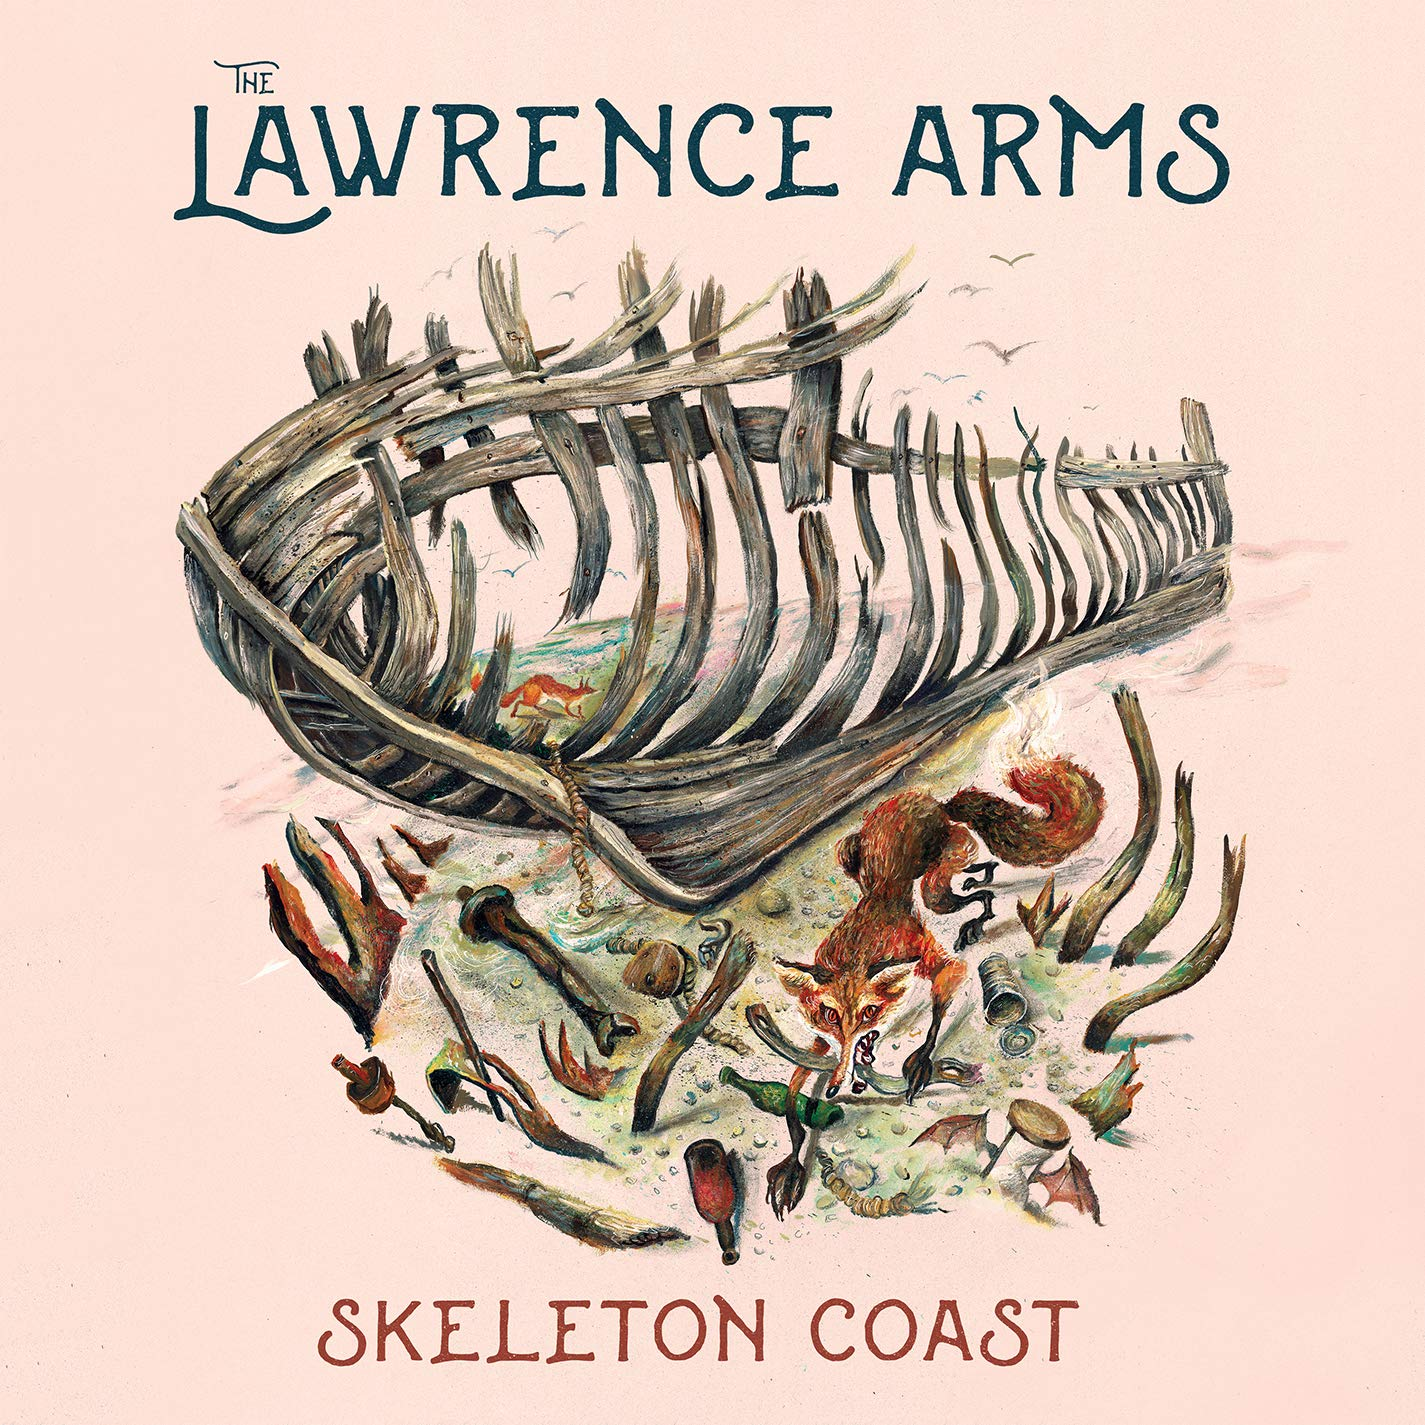 The Lawrence Arms - Skeleton Coast (2020) [FLAC] Download